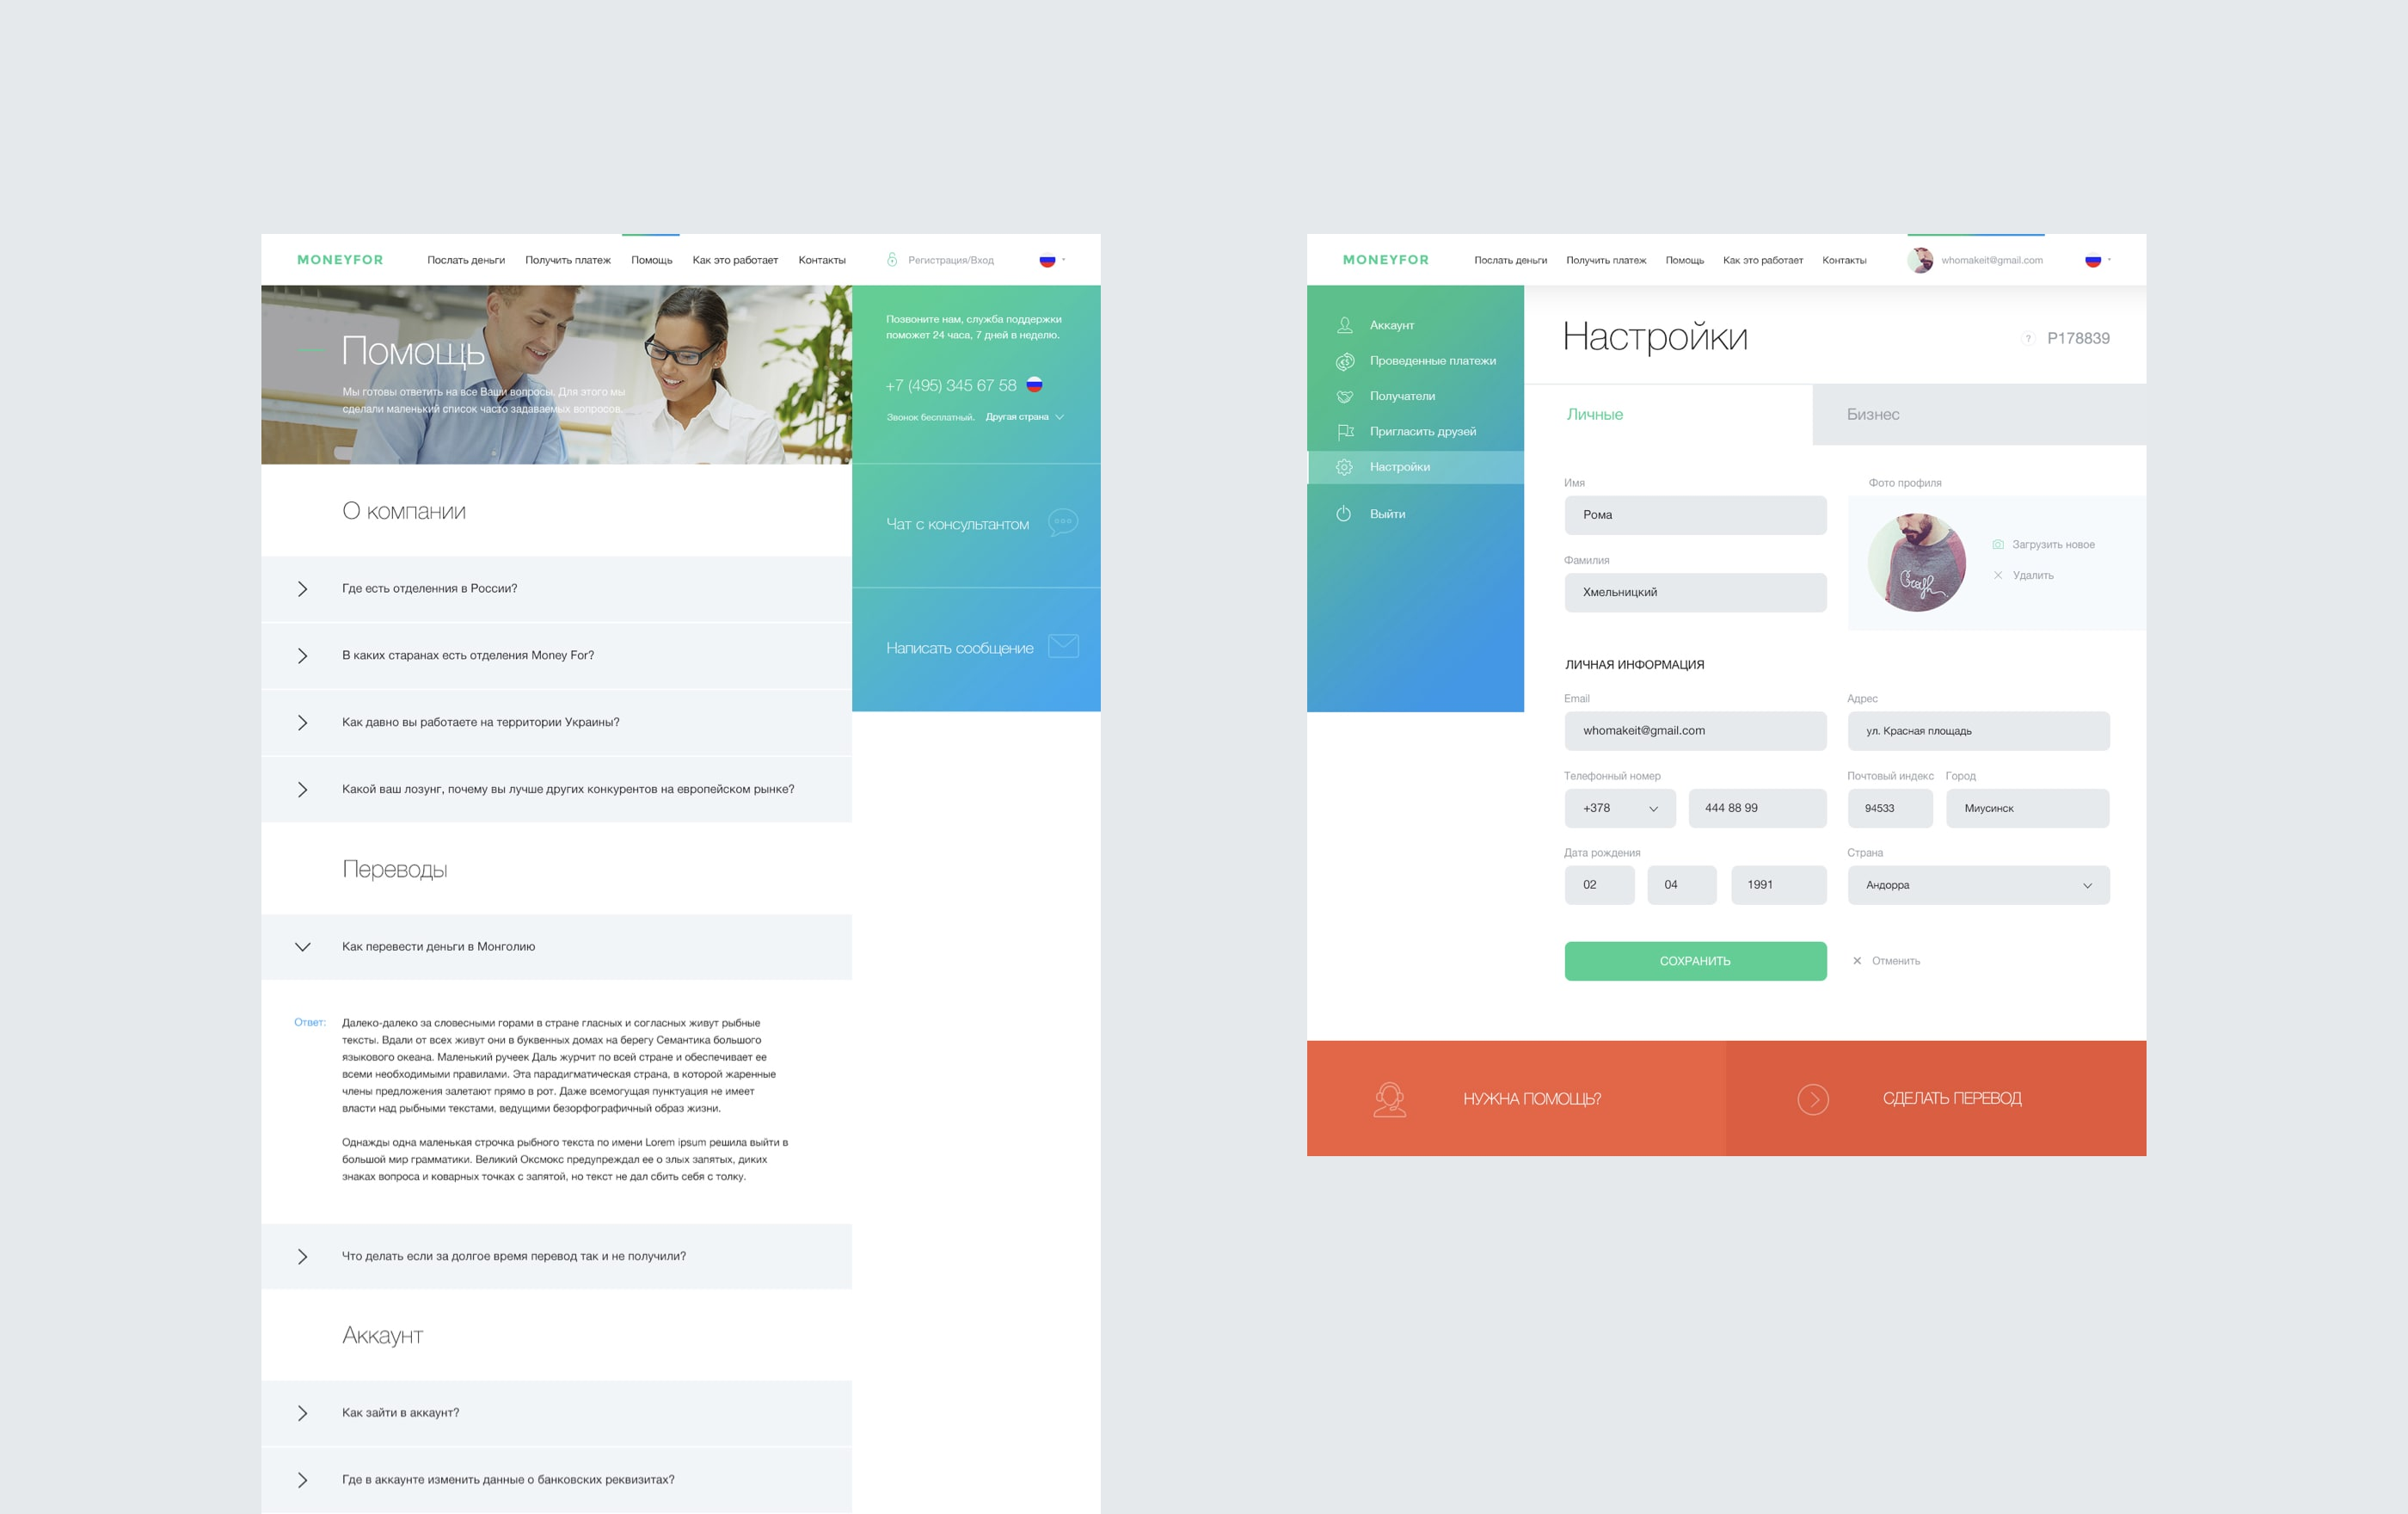 16_help page and settings page_Mobile App and website Money Nebeus_Money4_by_basov_design_